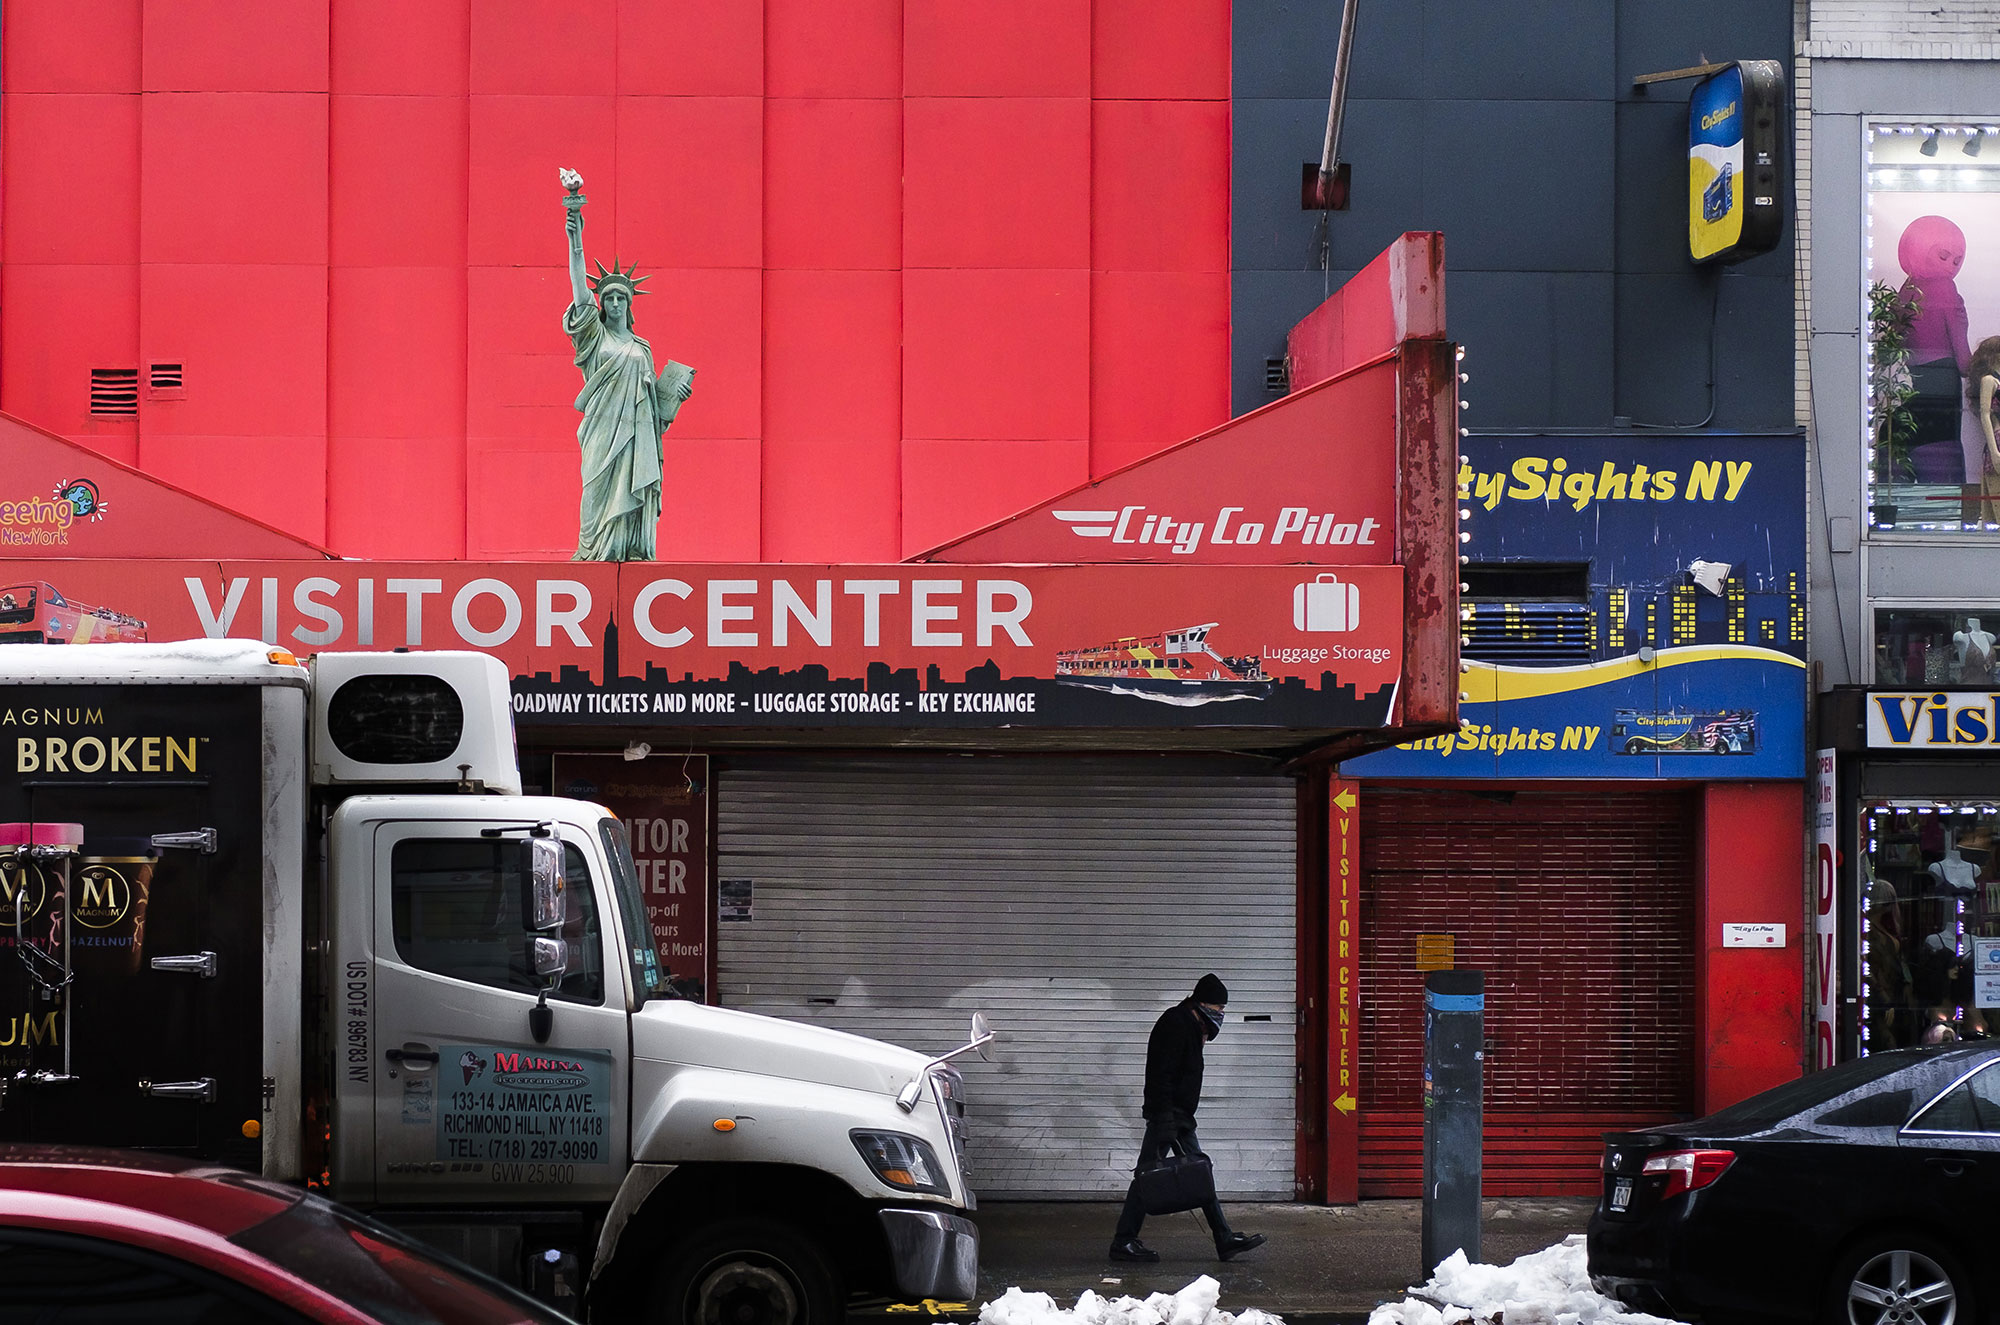 Tourism stores near New York's Times Square are closed on February 9.